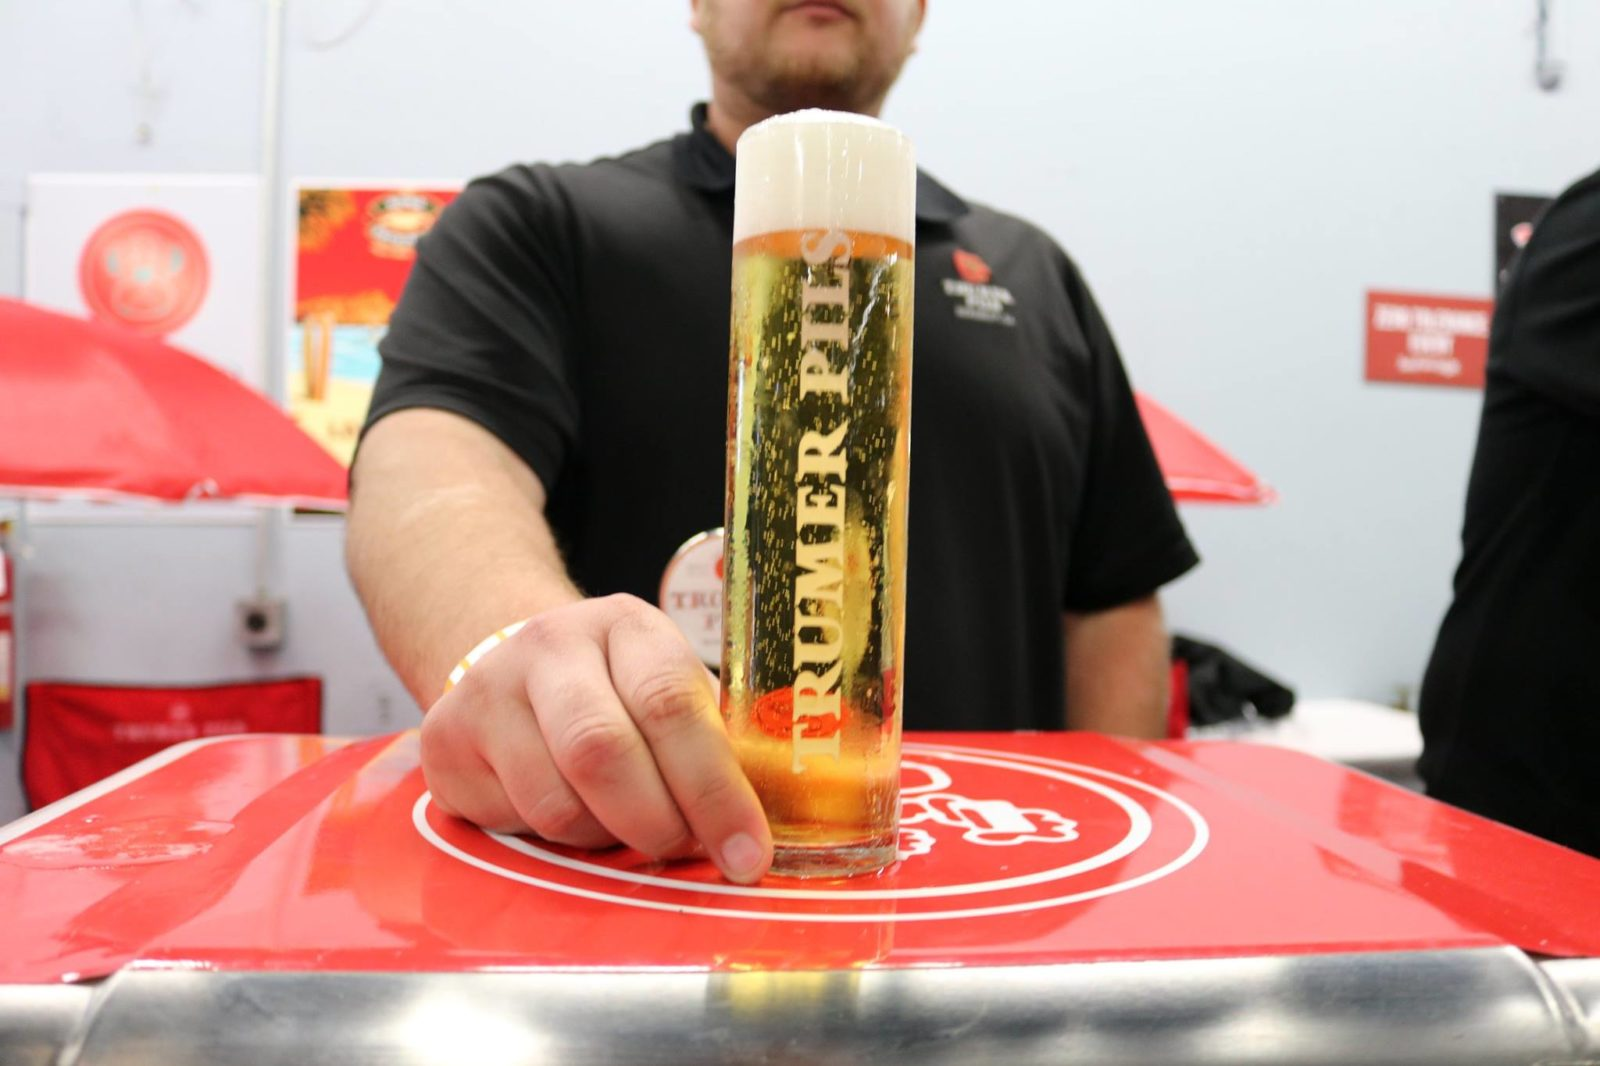 Man holding Trumer Pils glass